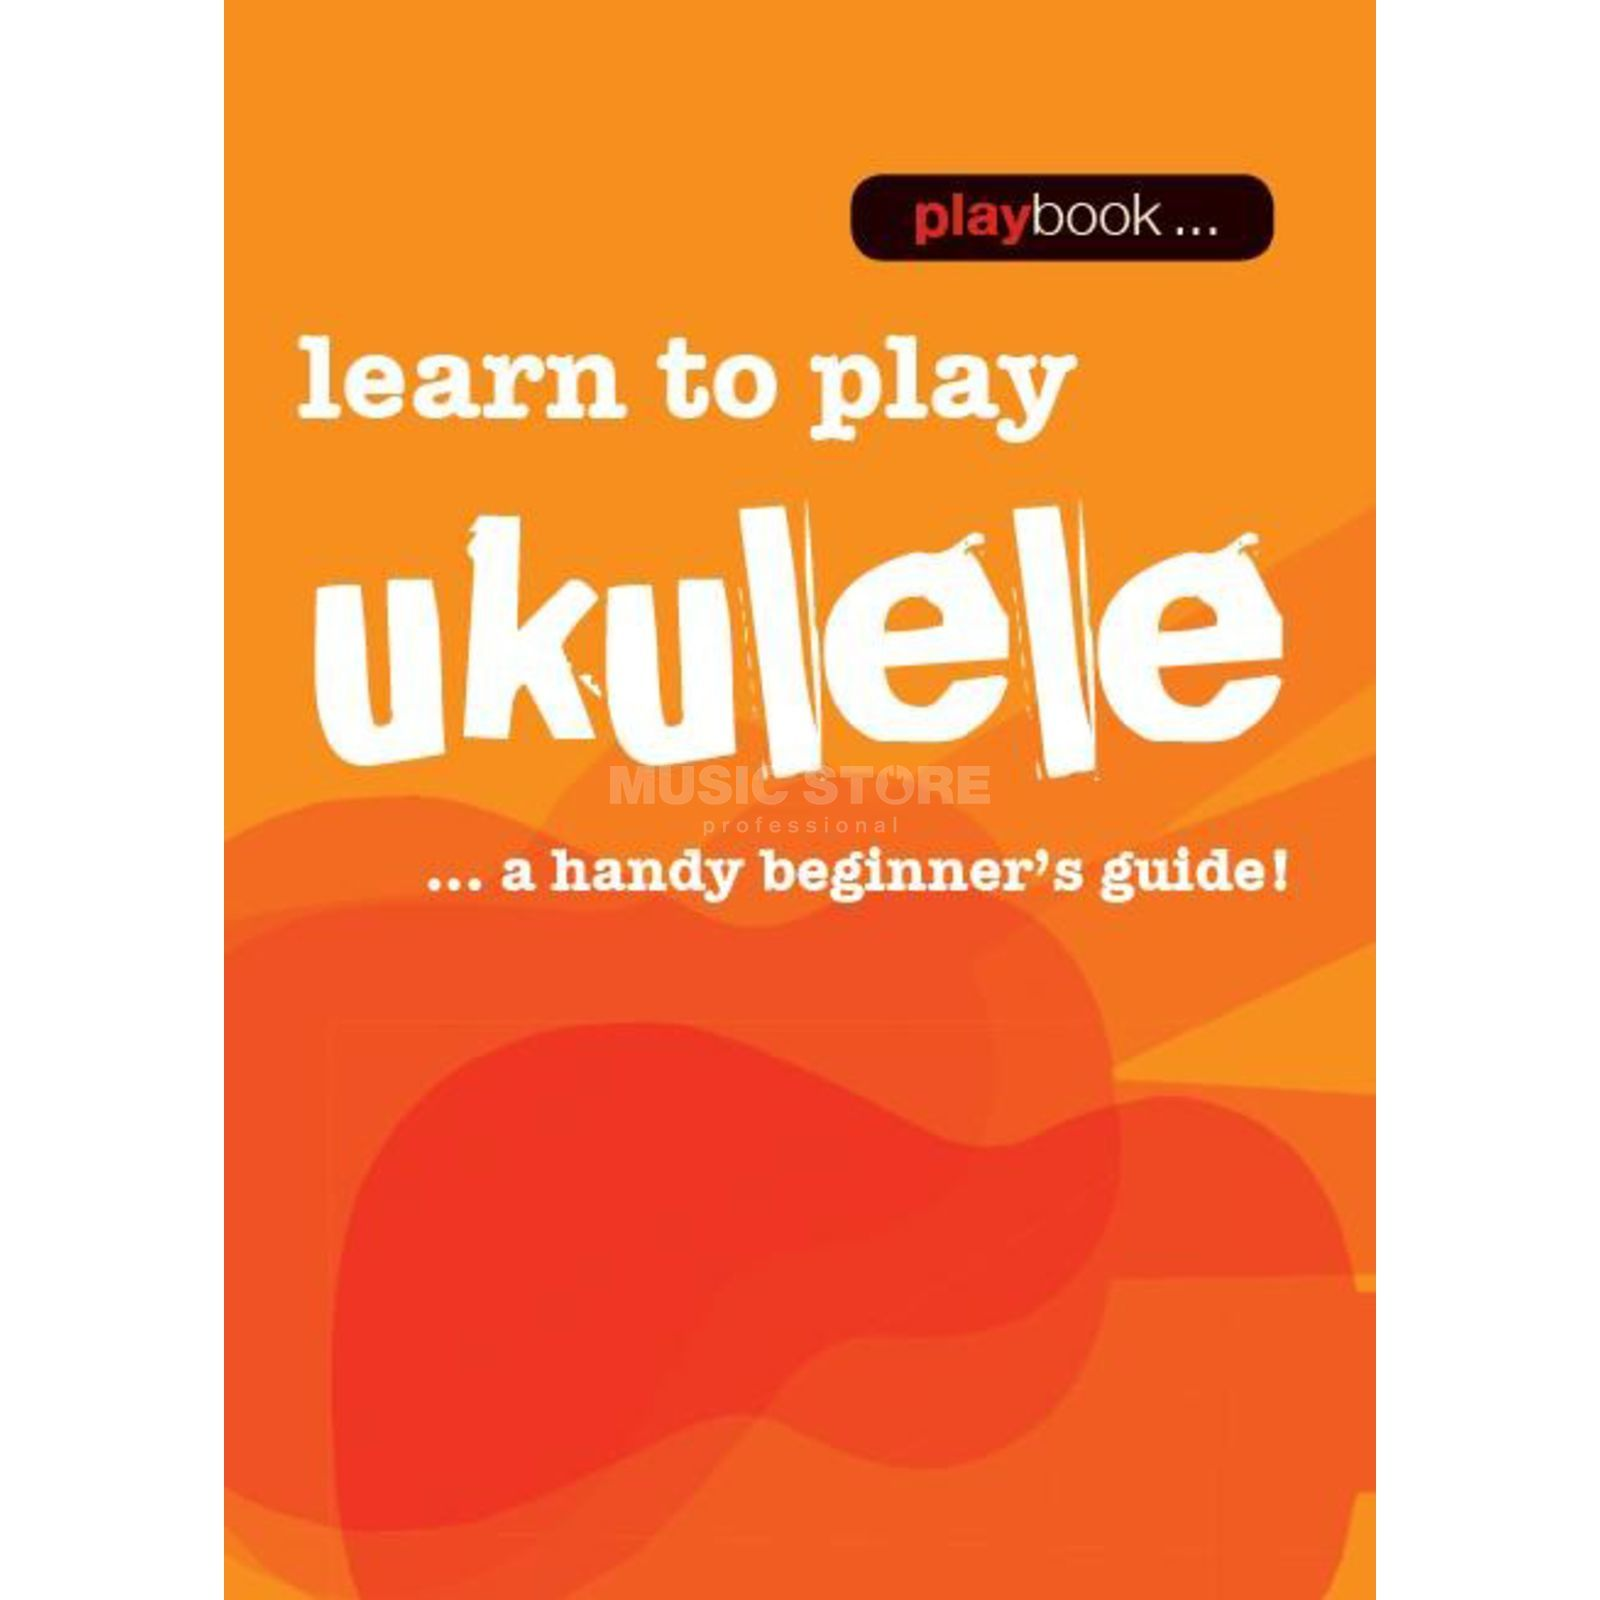 Wise Publications Playbook: Learn To Play Ukulele A Handy Beginner's Guide! Produktbild